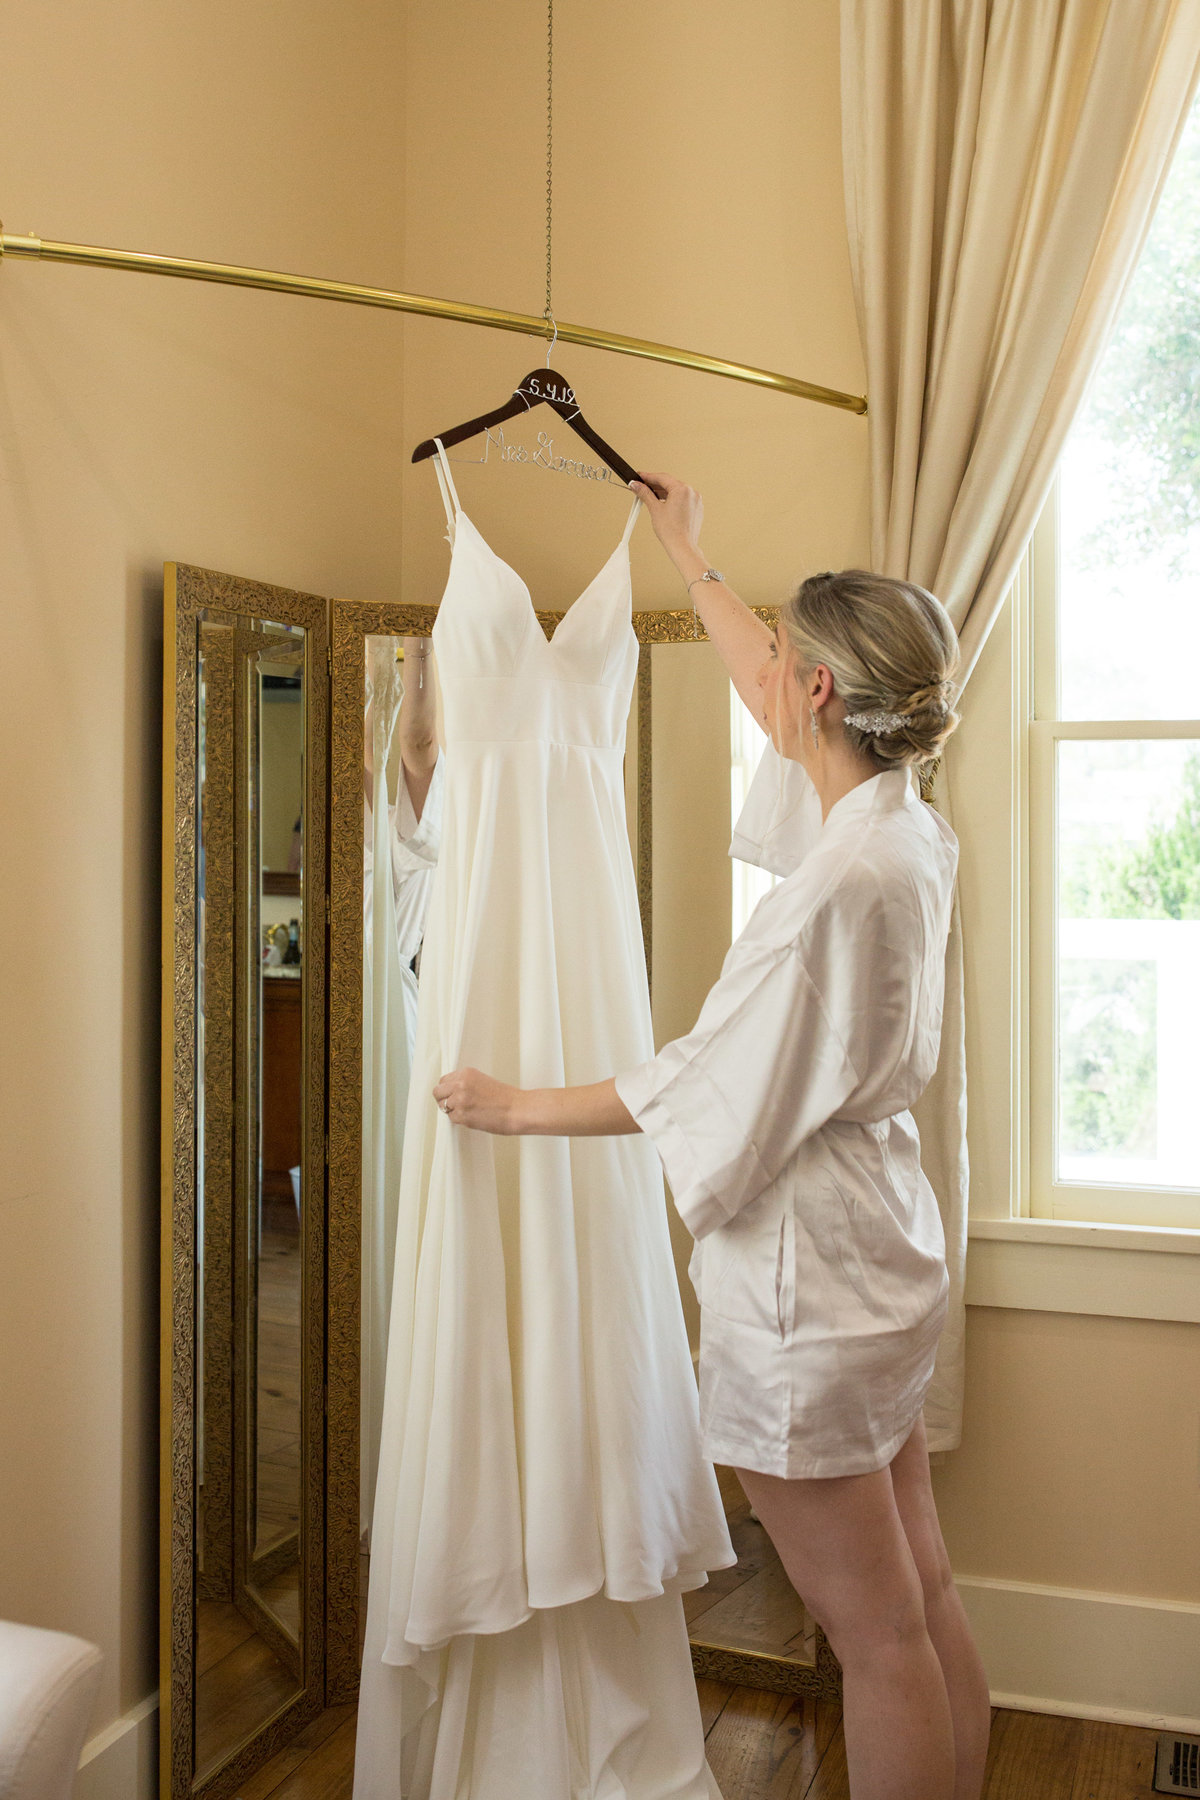 bride holding up her dress in her robe when she is about to get dressed